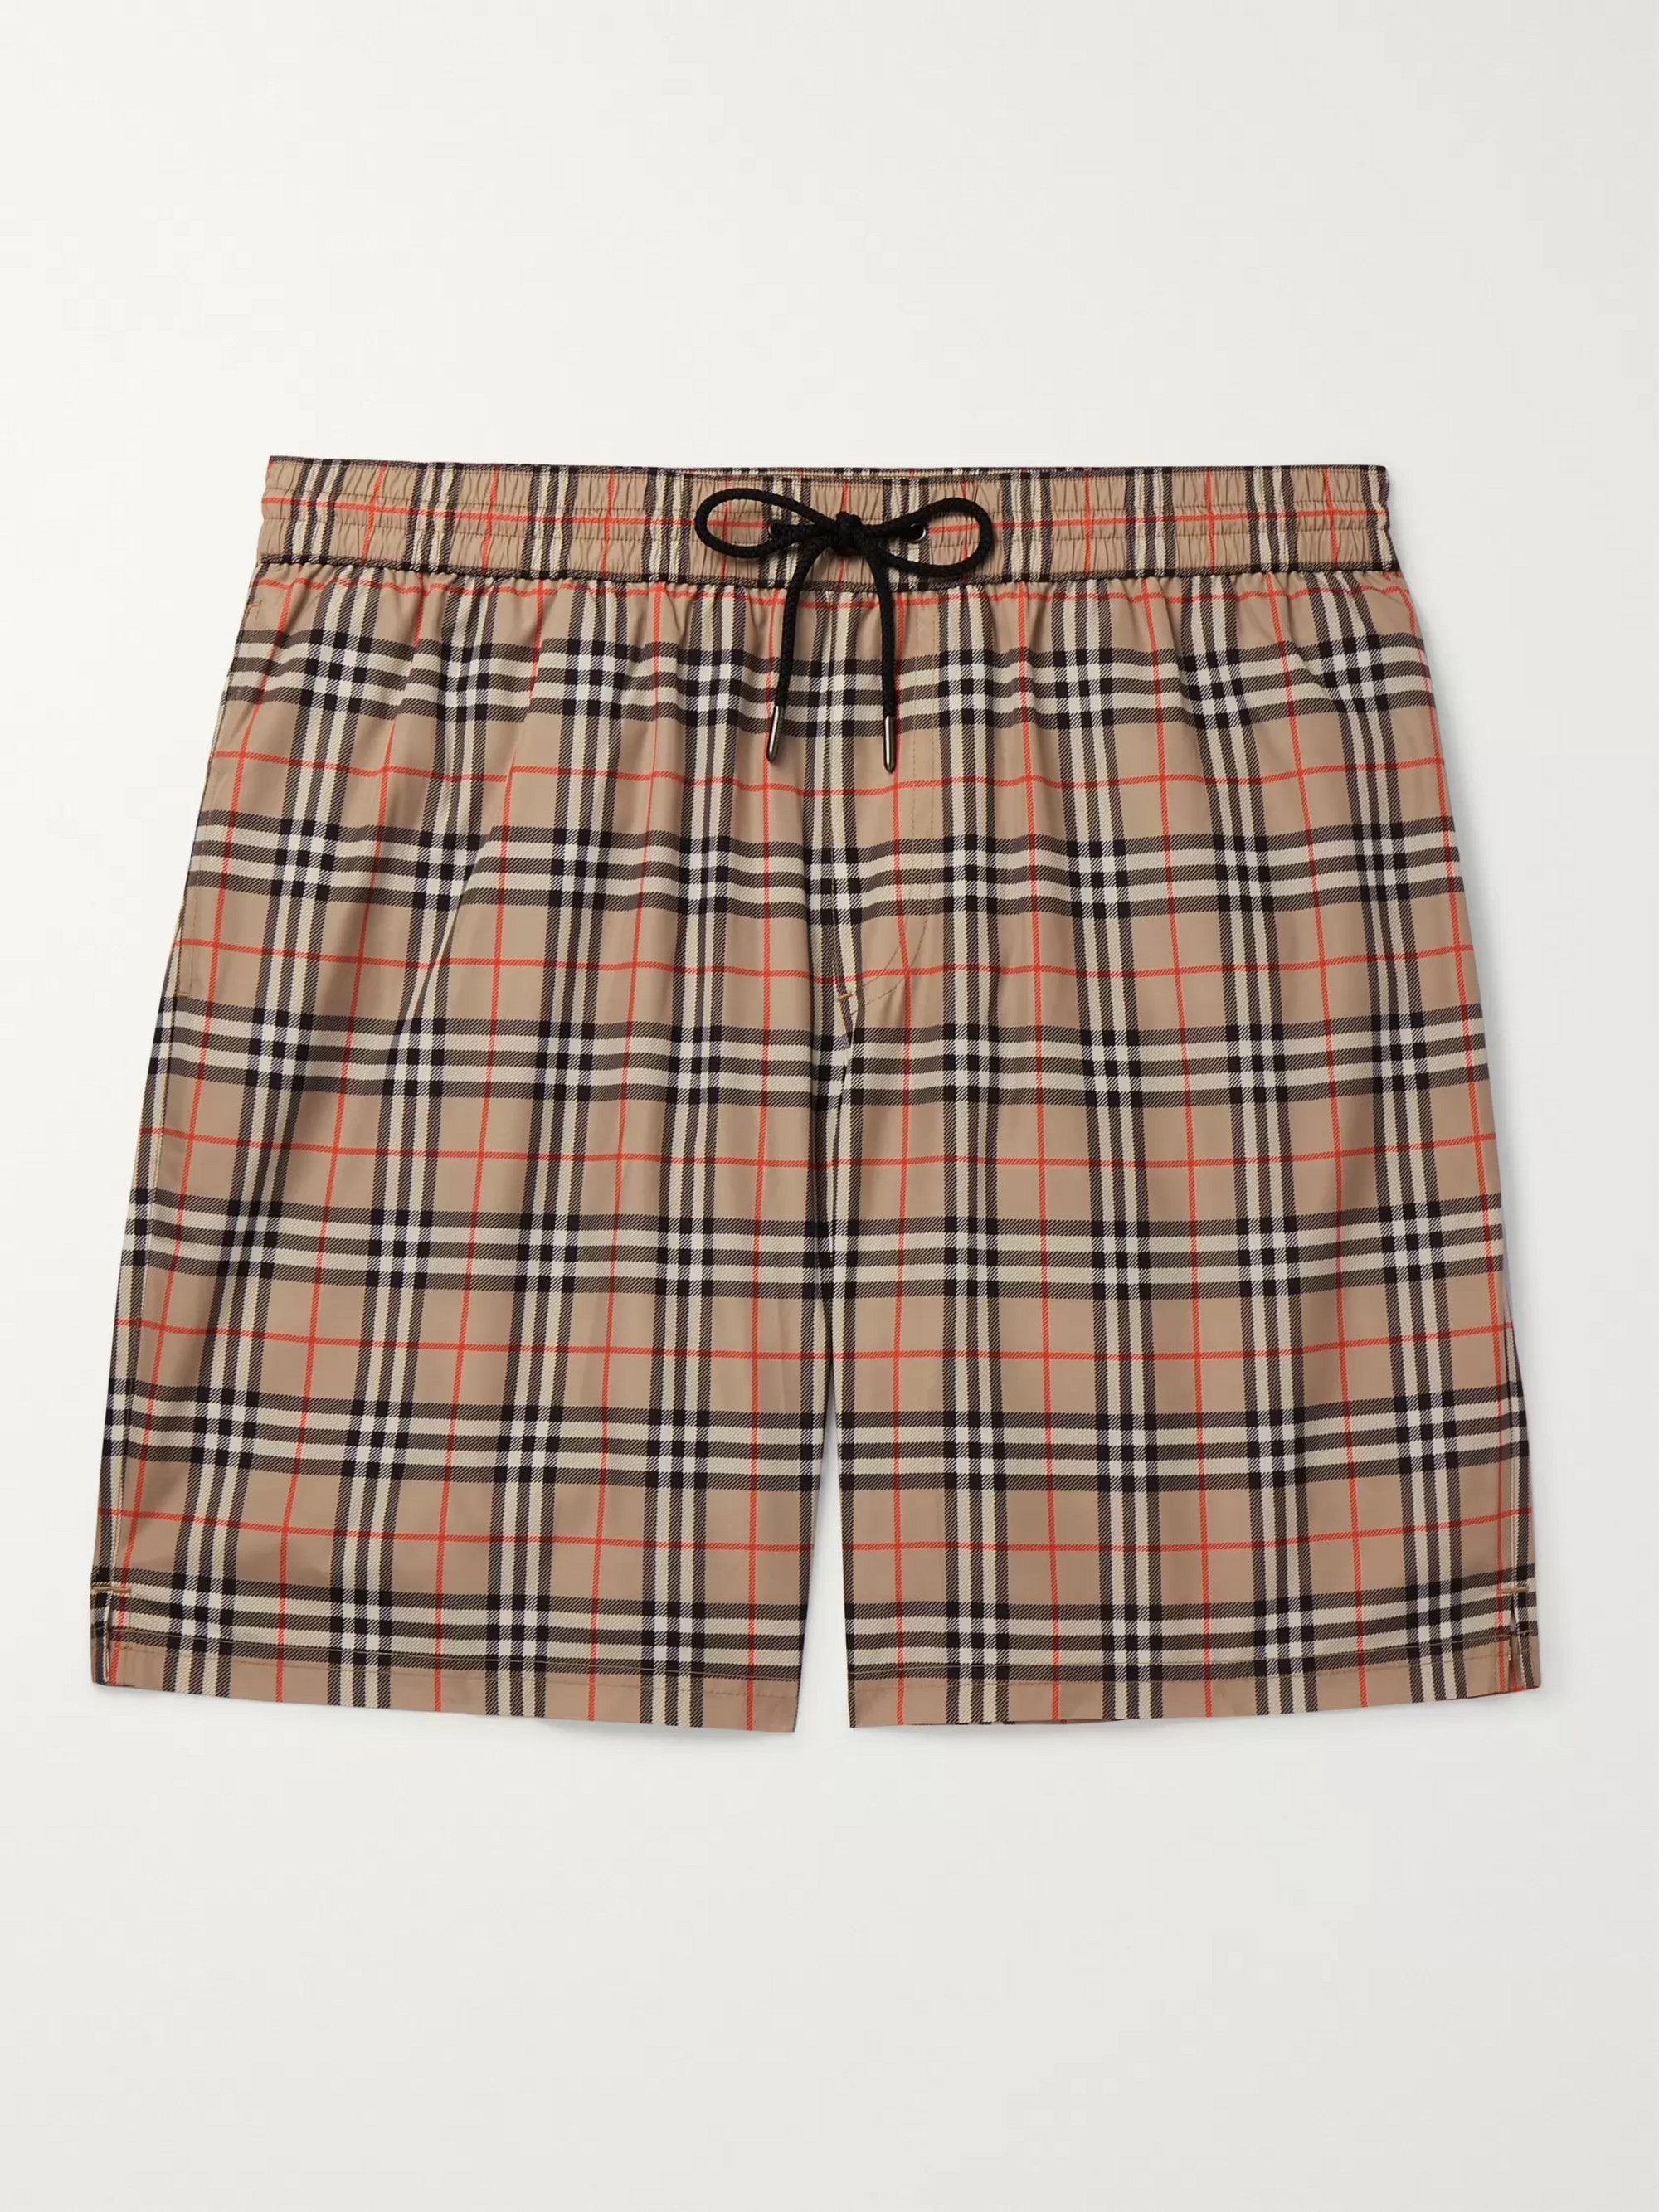 Burberry Long-Length Checked Swim Shorts